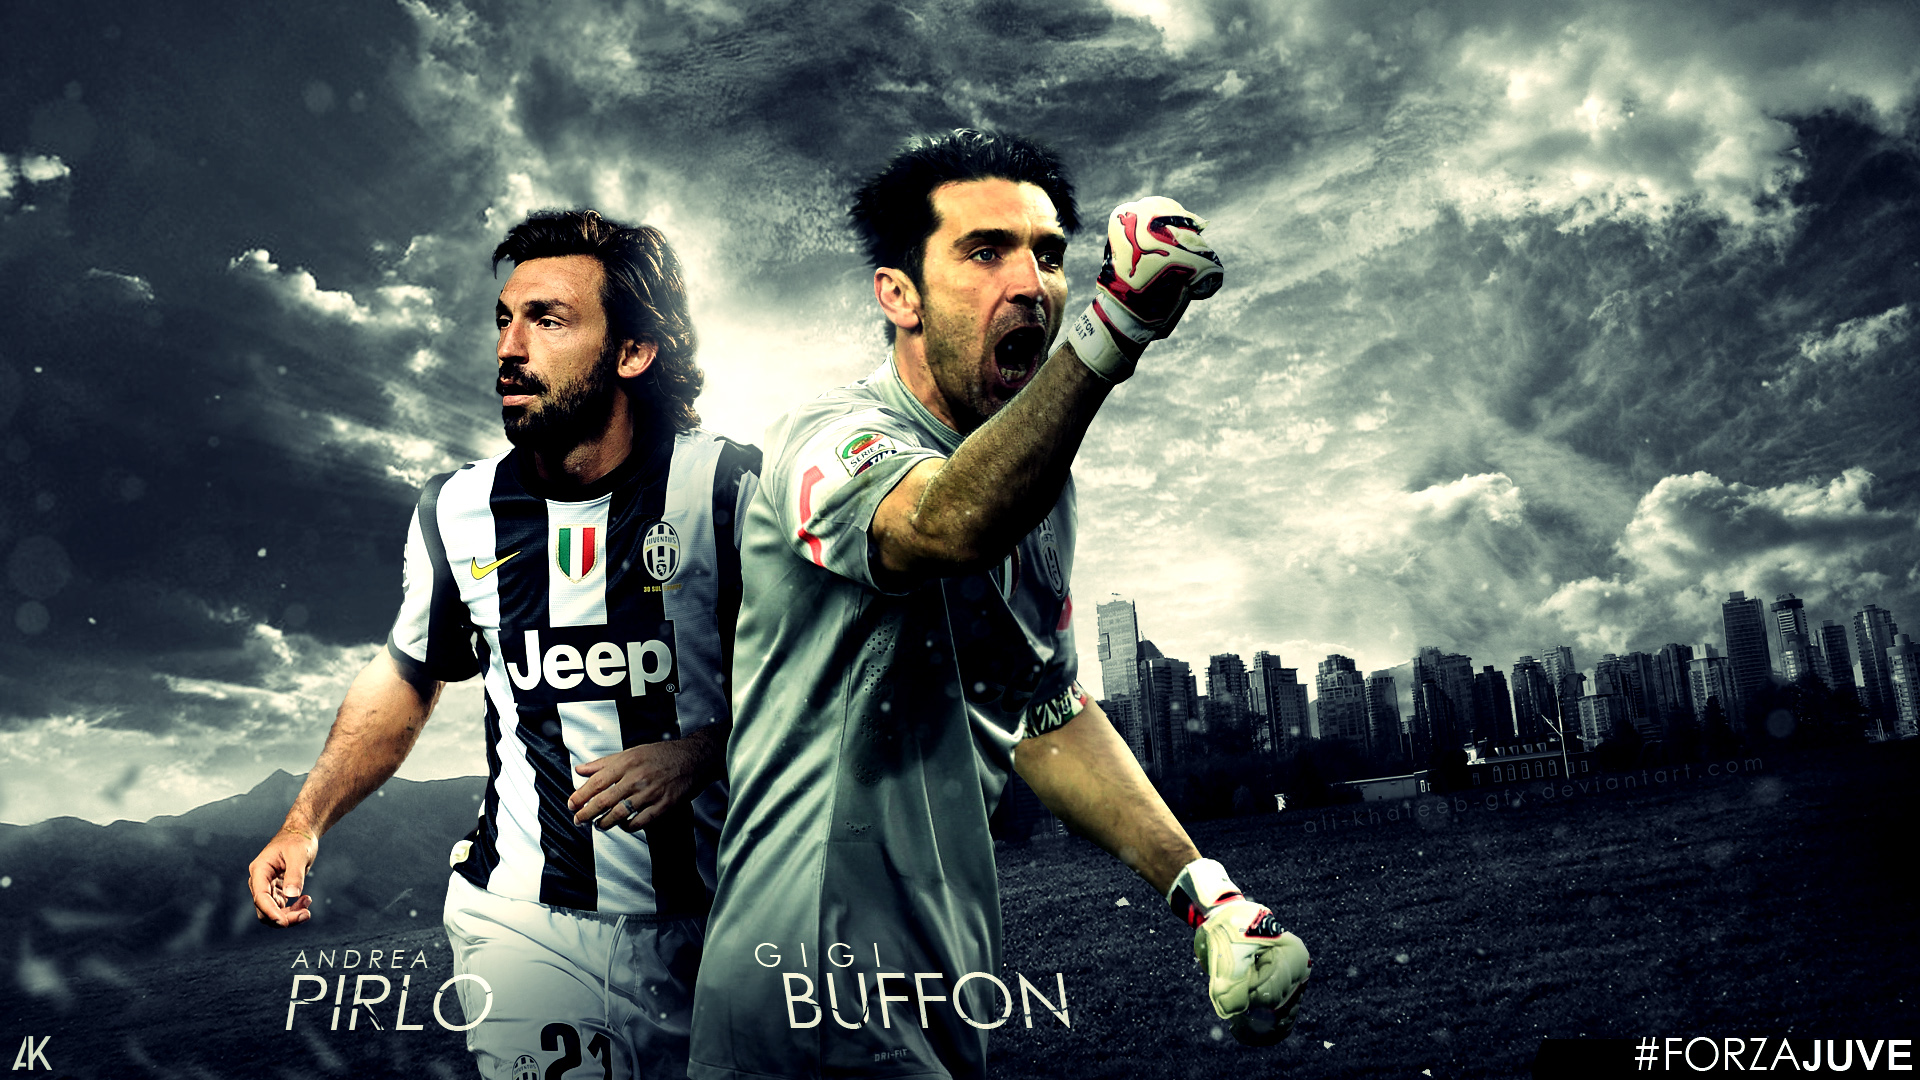 1920x1080 - Andrea Pirlo Wallpapers 11